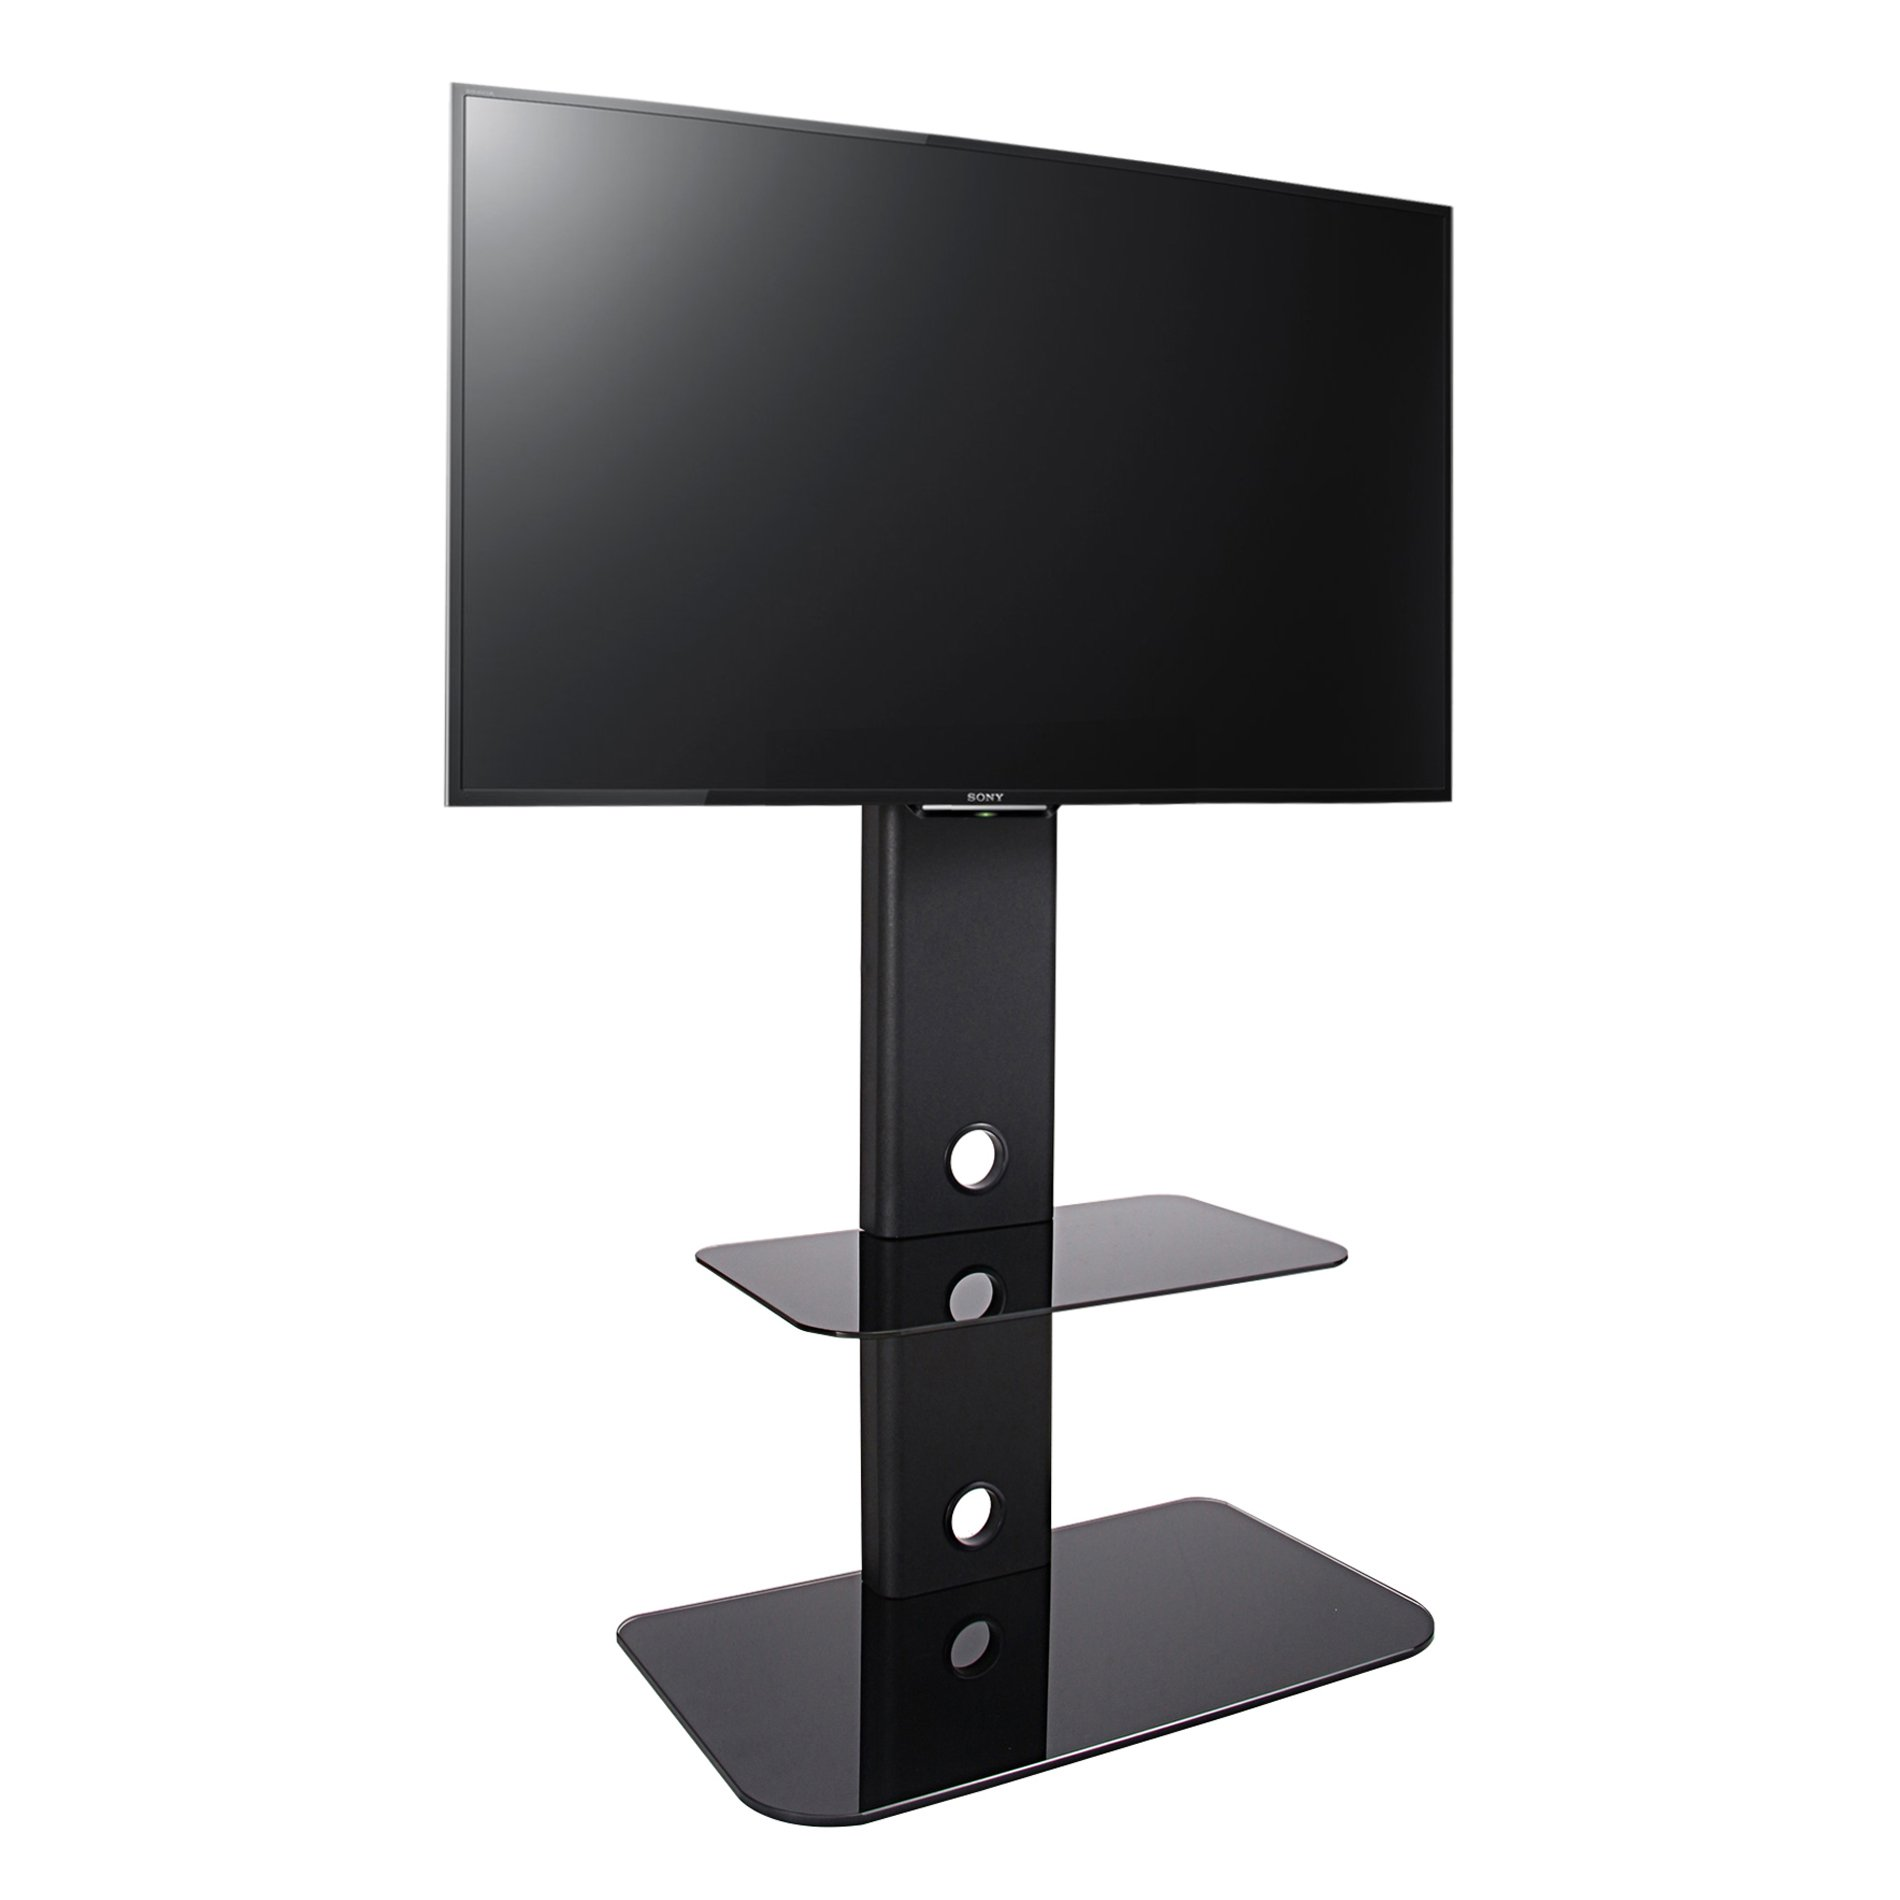 Fitueyes Floor Tv Stand With Mount Swivel For 32 60 Inches